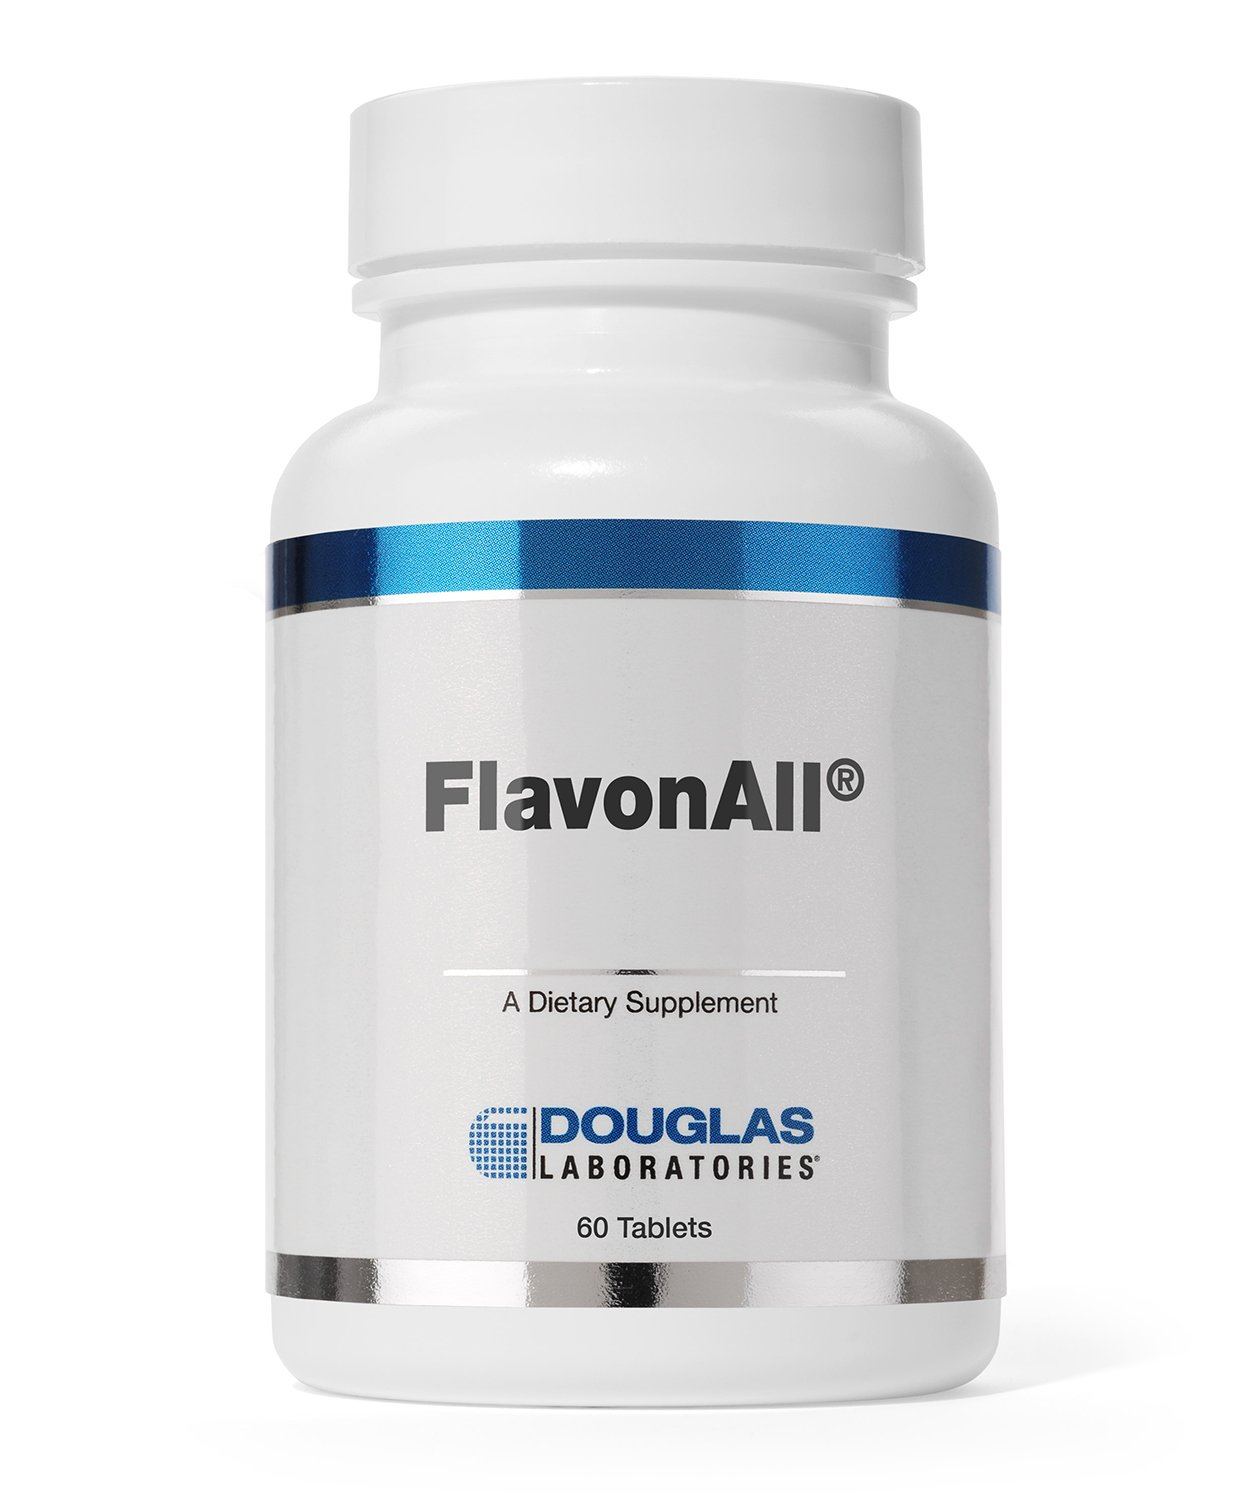 Douglas Laboratories - FlavonAll - Broad Spectrum Antioxidant Flavonoids Supports Immunity, Circulatory and Vascular Health, Blood Flow, Liver Function and Metabolism - 60 Tablets